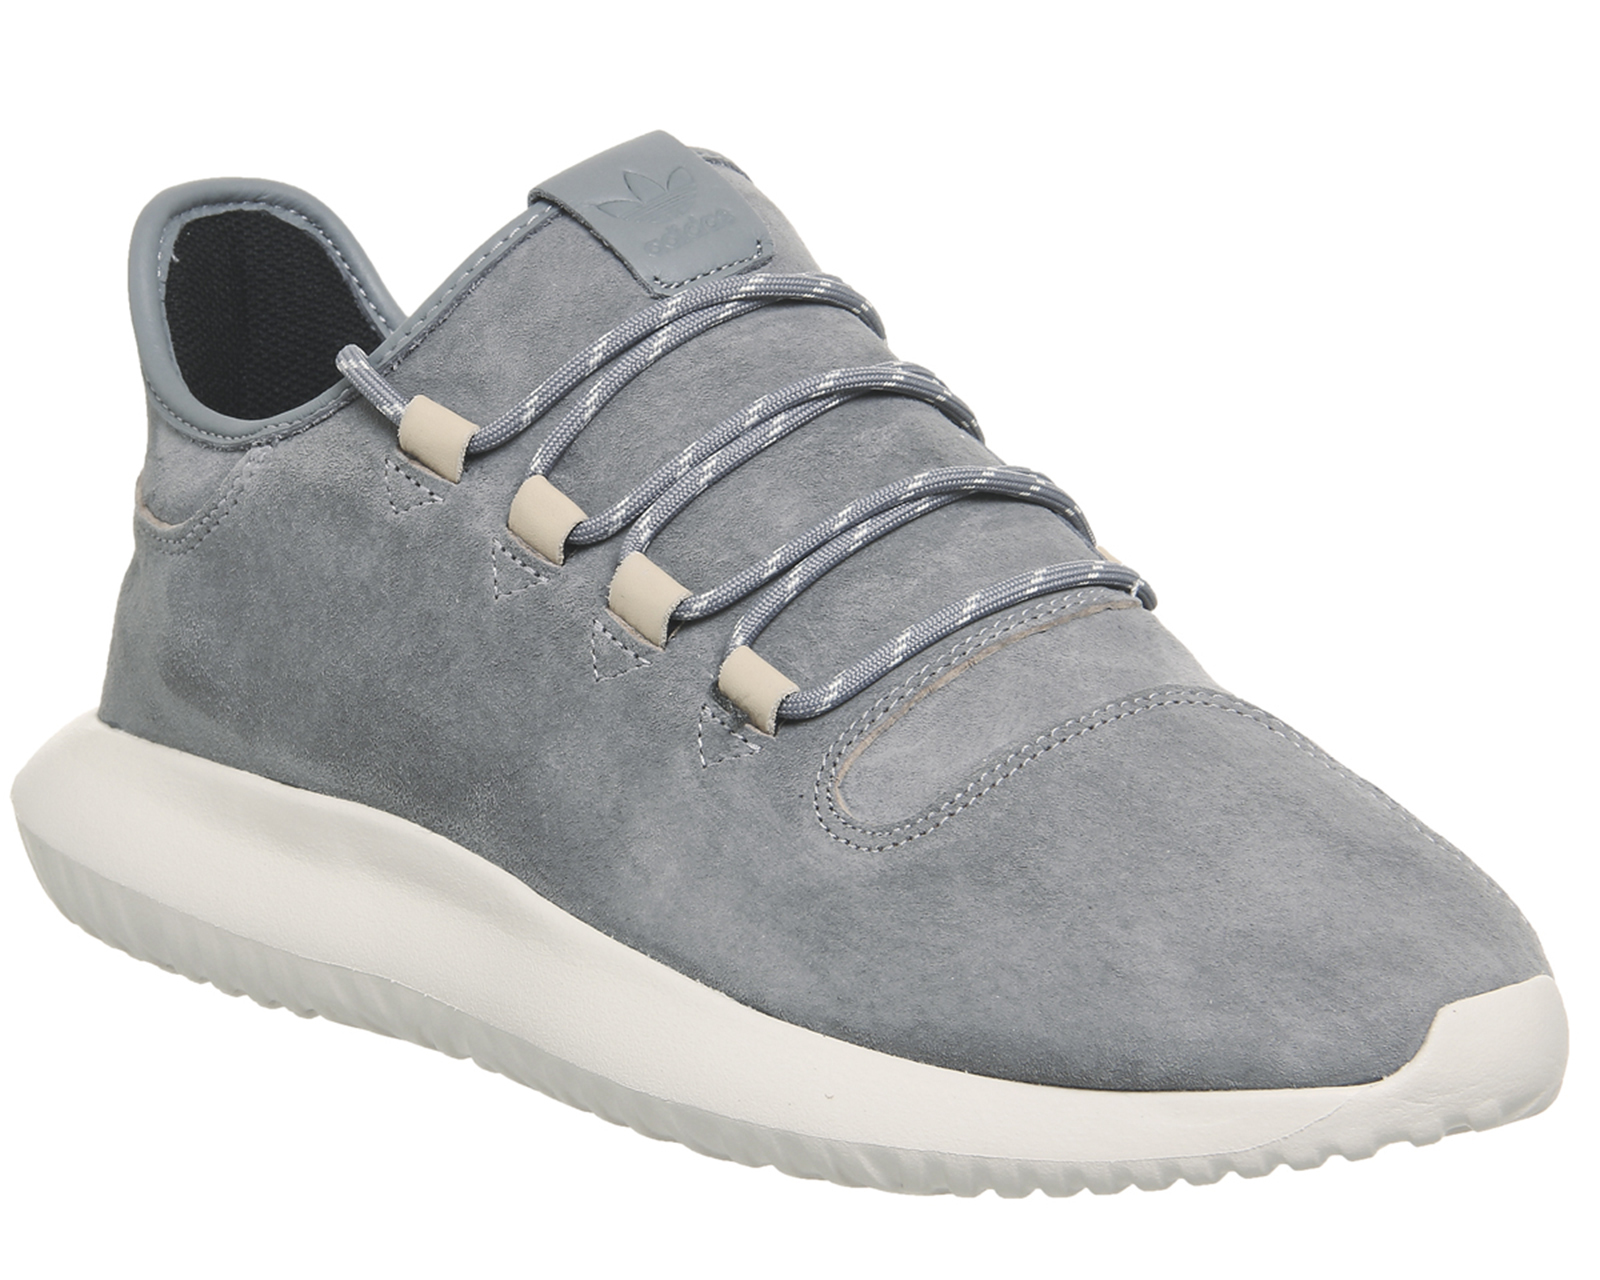 c9f83b72f93 Sentinel Mens Adidas Tubular Shadow GREY GREY OFF WHITE Trainers Shoes